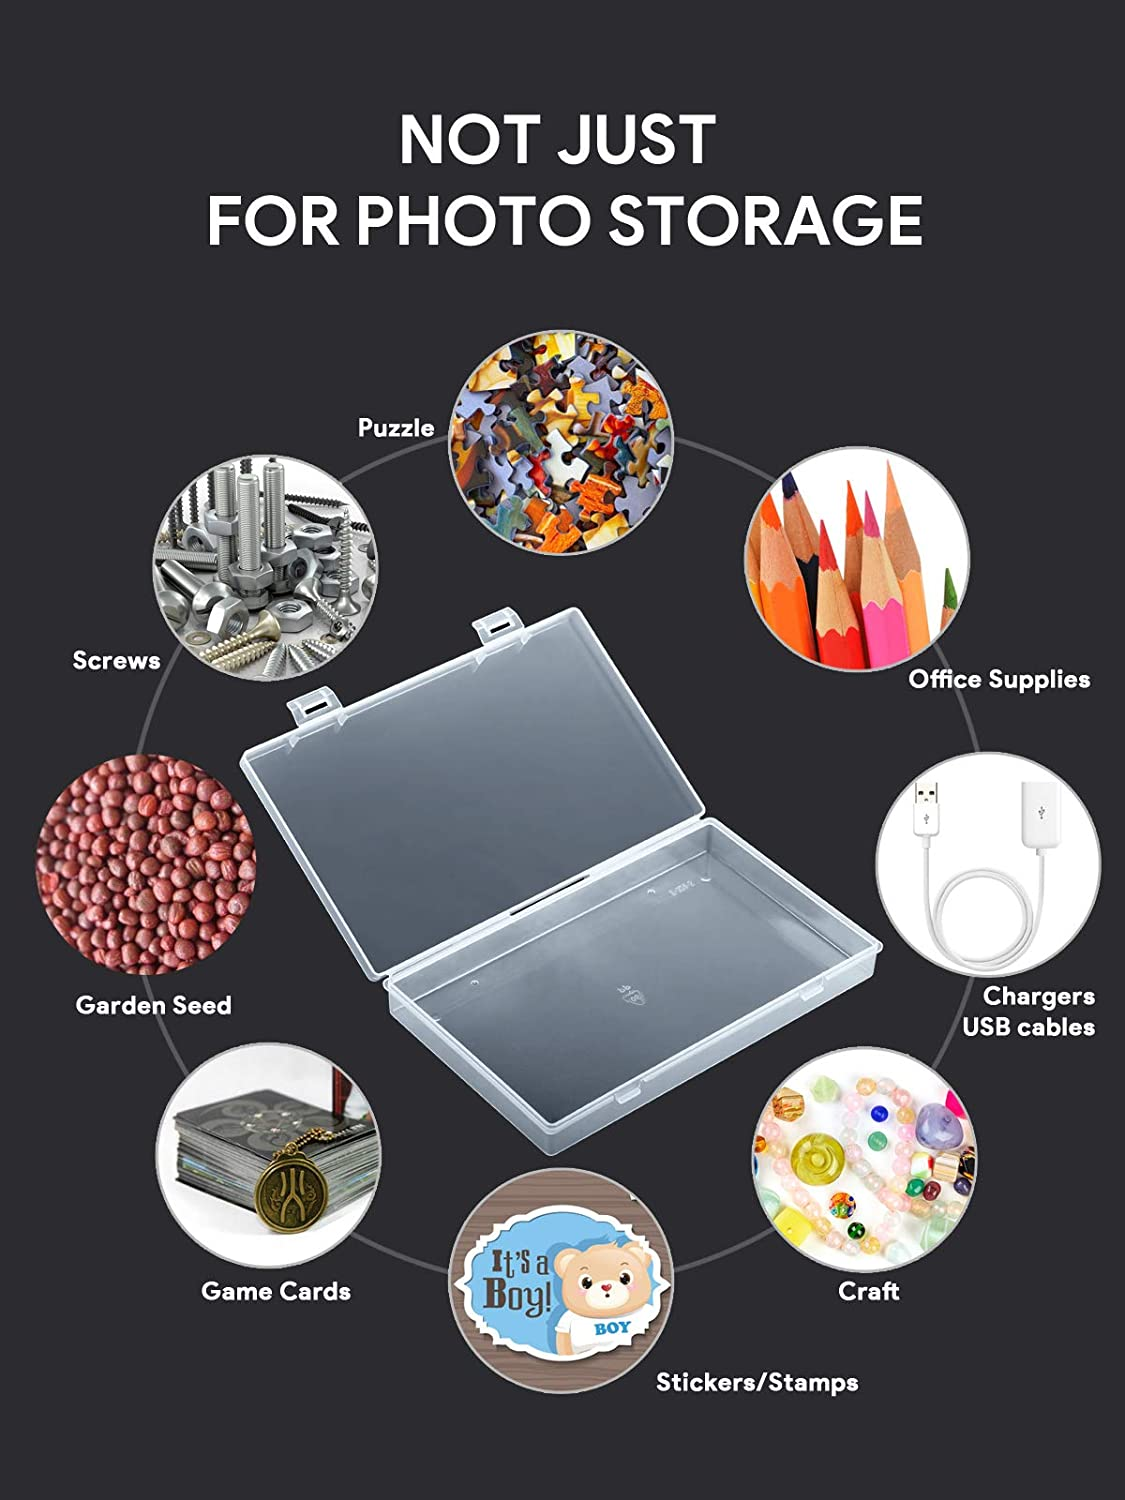 Extra Large Photo Case 4 x 6 Craft Storage Box for Photo Stickers Stamps Seeds Black Barhon Photo Storage Box Photo Organizer 18 Inner Photo Keeper Cases